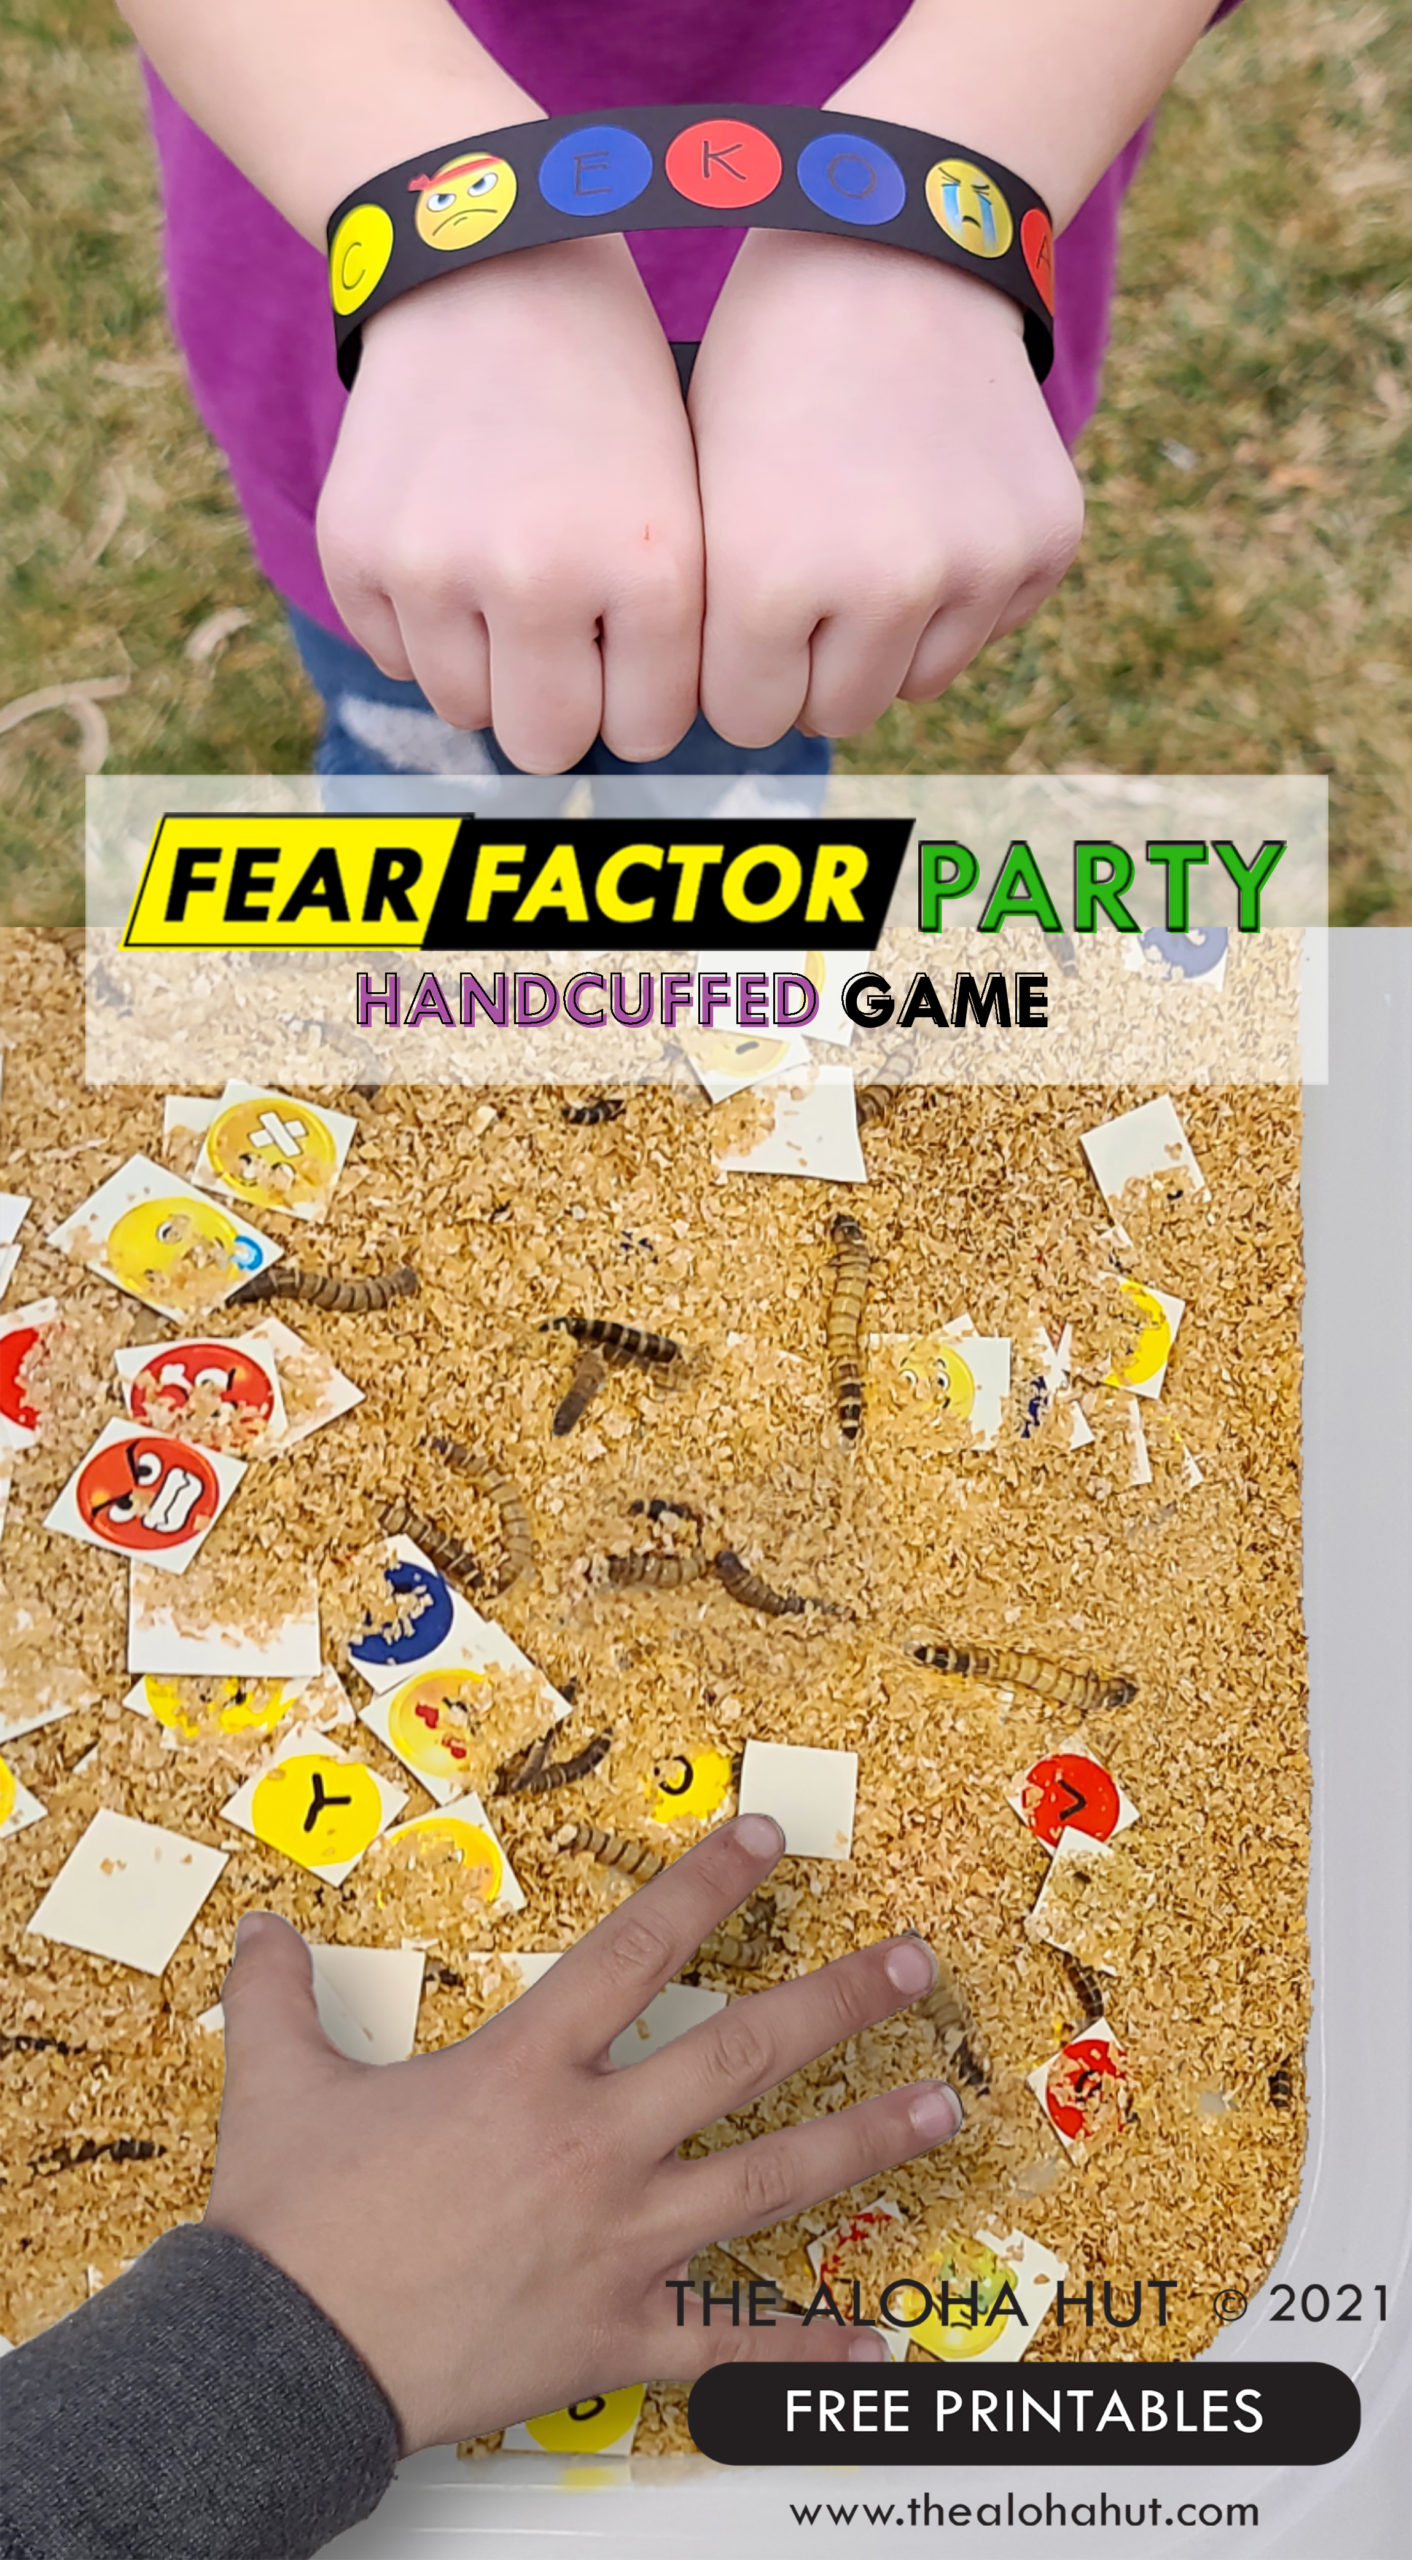 Fear Factor Party Handcuffed Game - The Aloha Hut